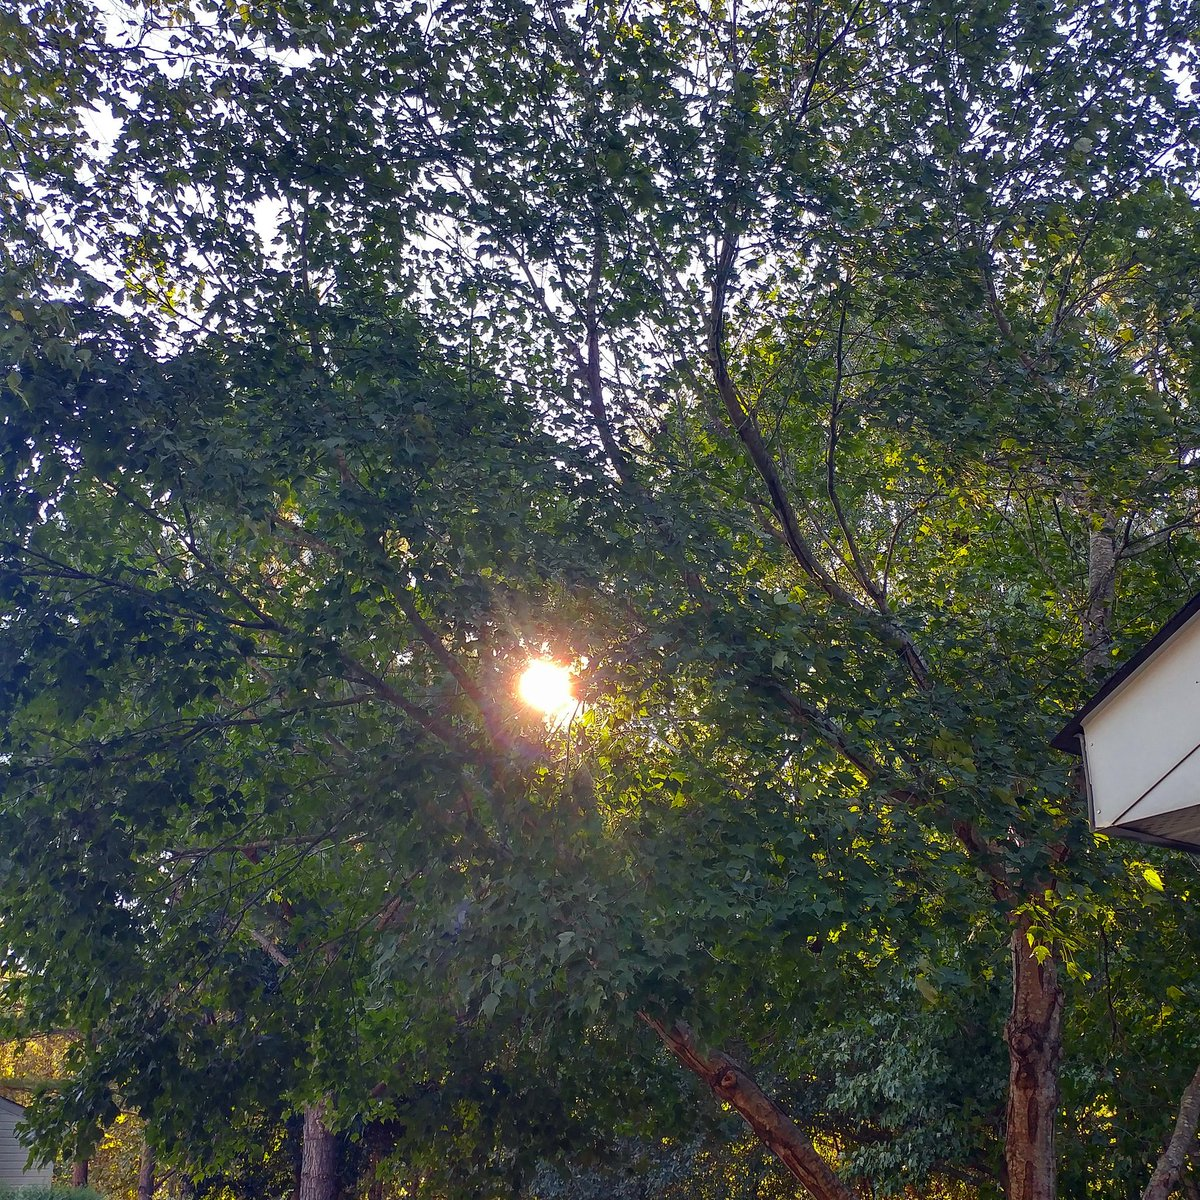 Sister Toldjah 😁 on Twitter: Has been a beautiful #fall morning in Charlotte. Cooler temperatures. Light breeze. Perfect day for apple cider and a pumpkin spice muffin. 🍂🍁🍃  #autumn #cltwx #TGIF #nature…